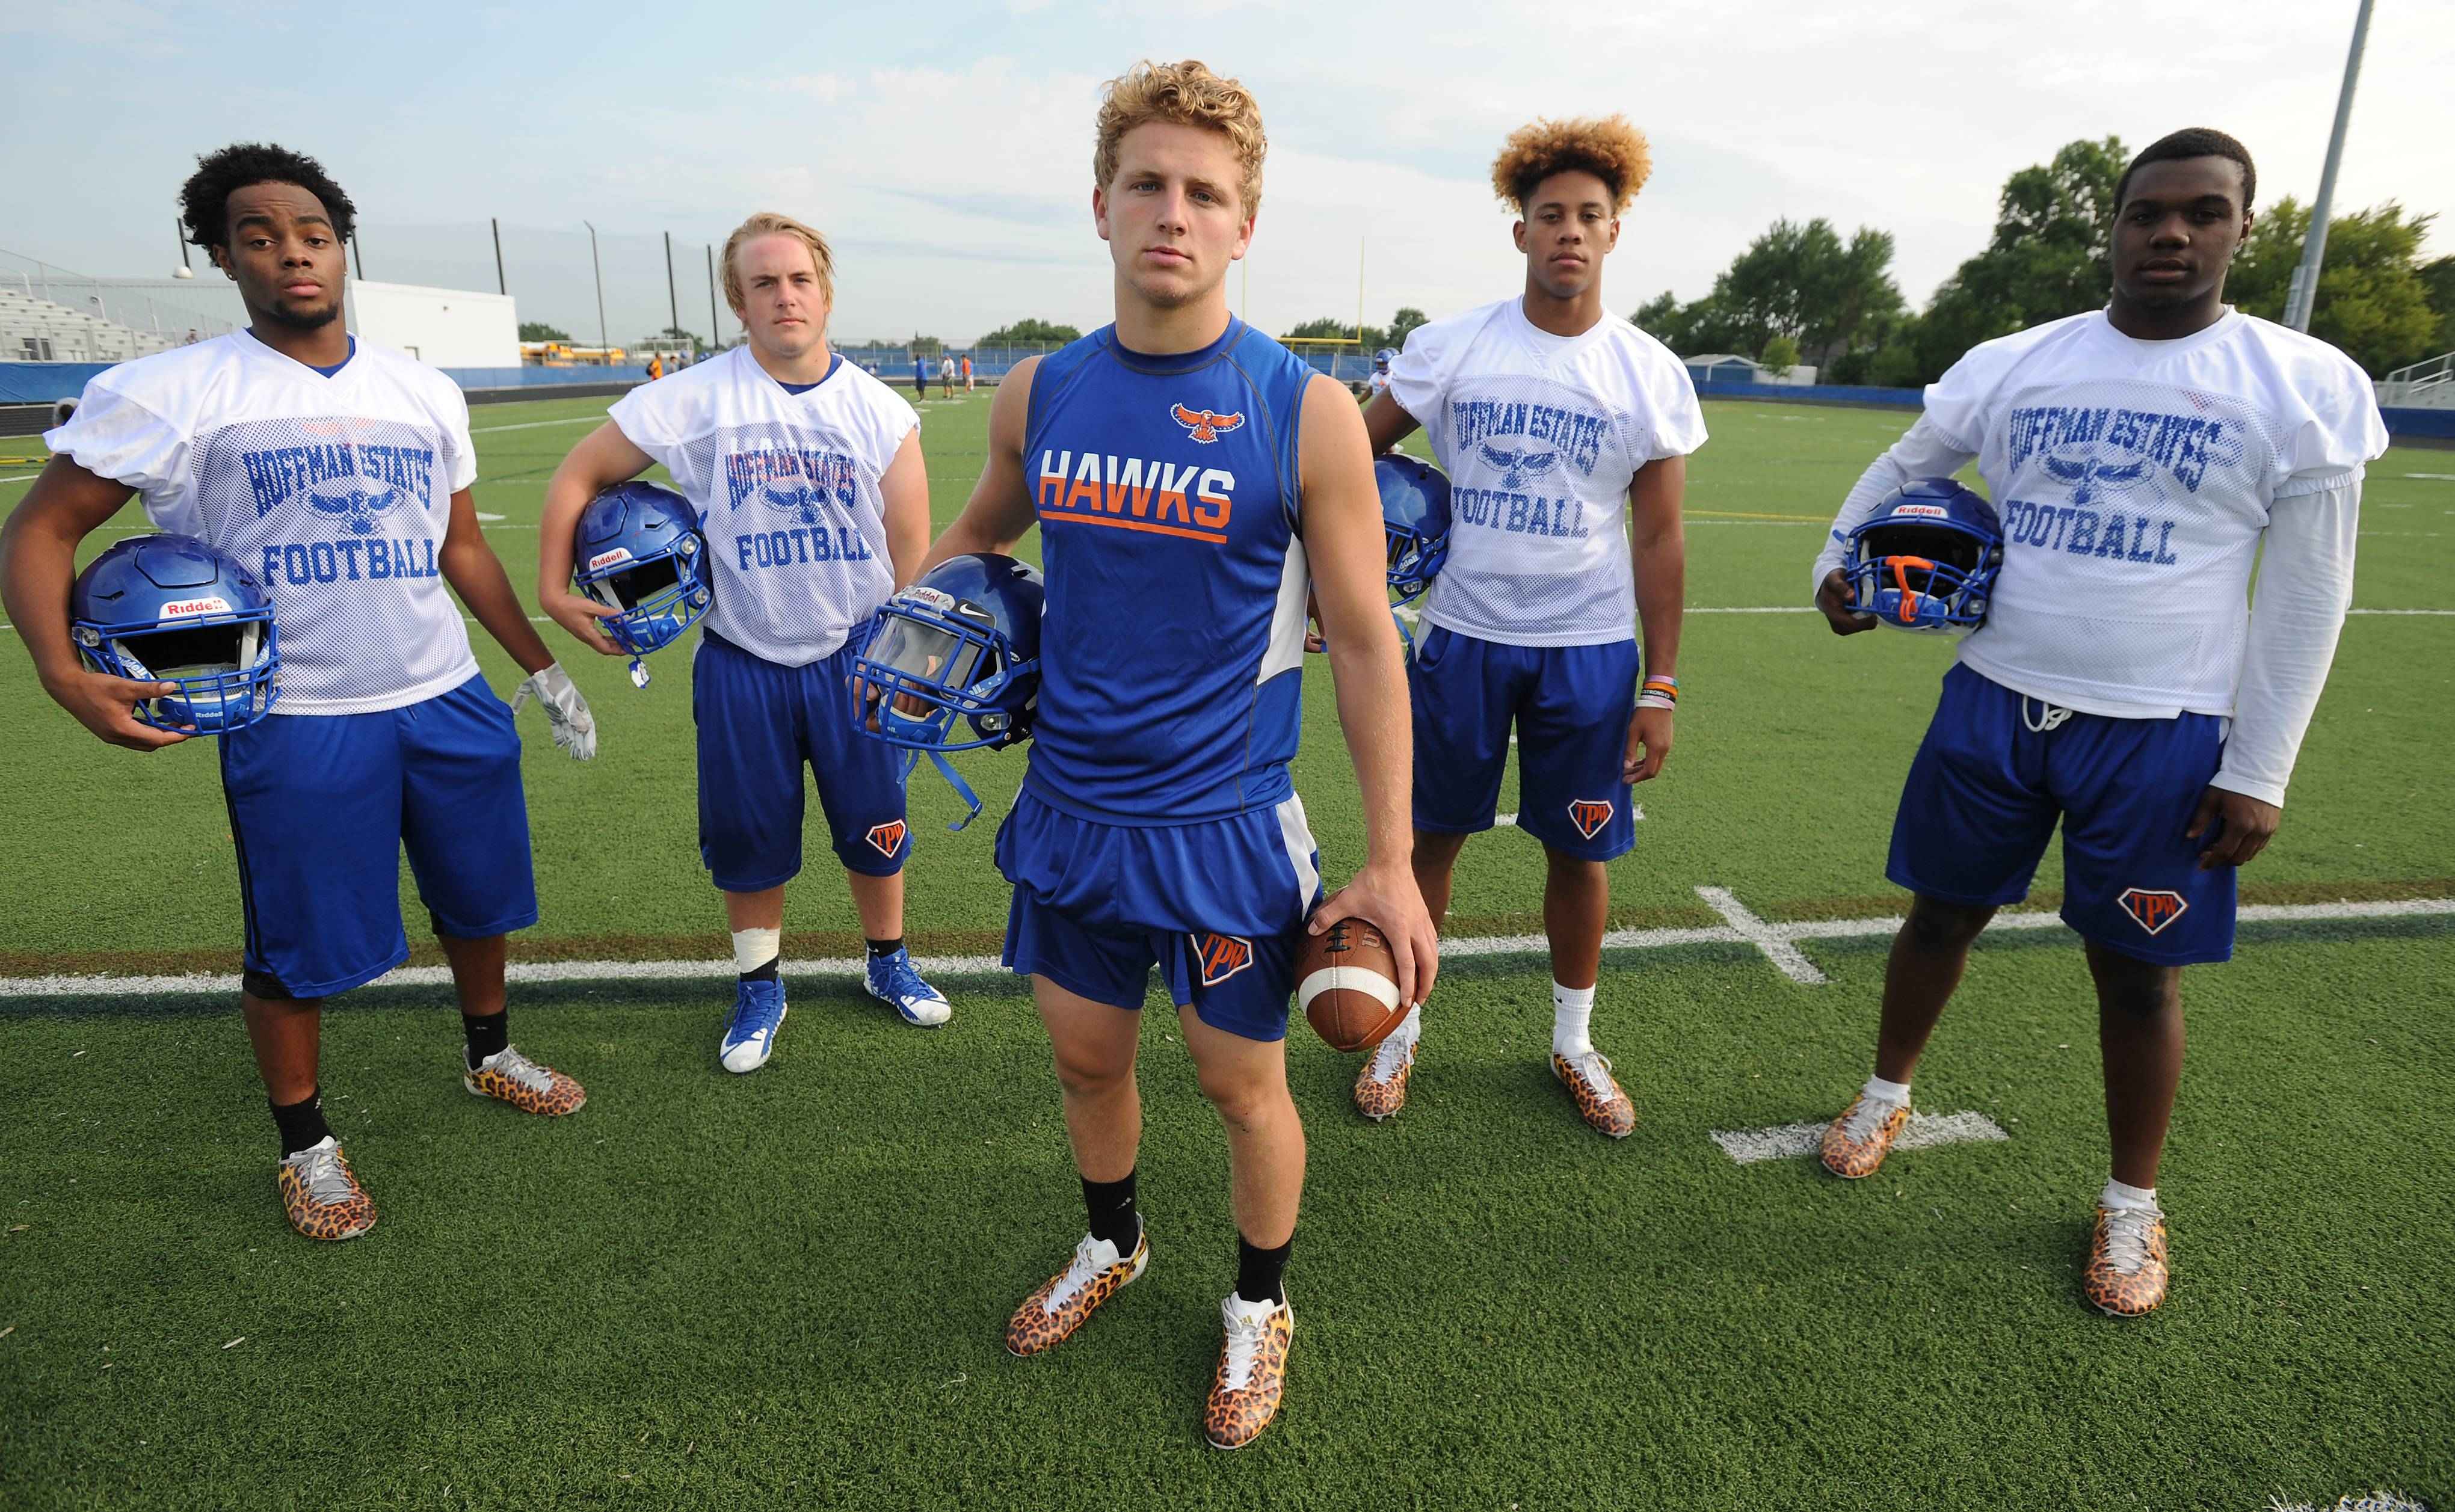 Hoffman Estates football players, safety Trevon Hall, linebacker Jimmy Burks, quarterback Austin Coalson and receiver Jayvon Blissett and linebacker/receiver Jaylan Alexander on day one of the high school football season Monday.